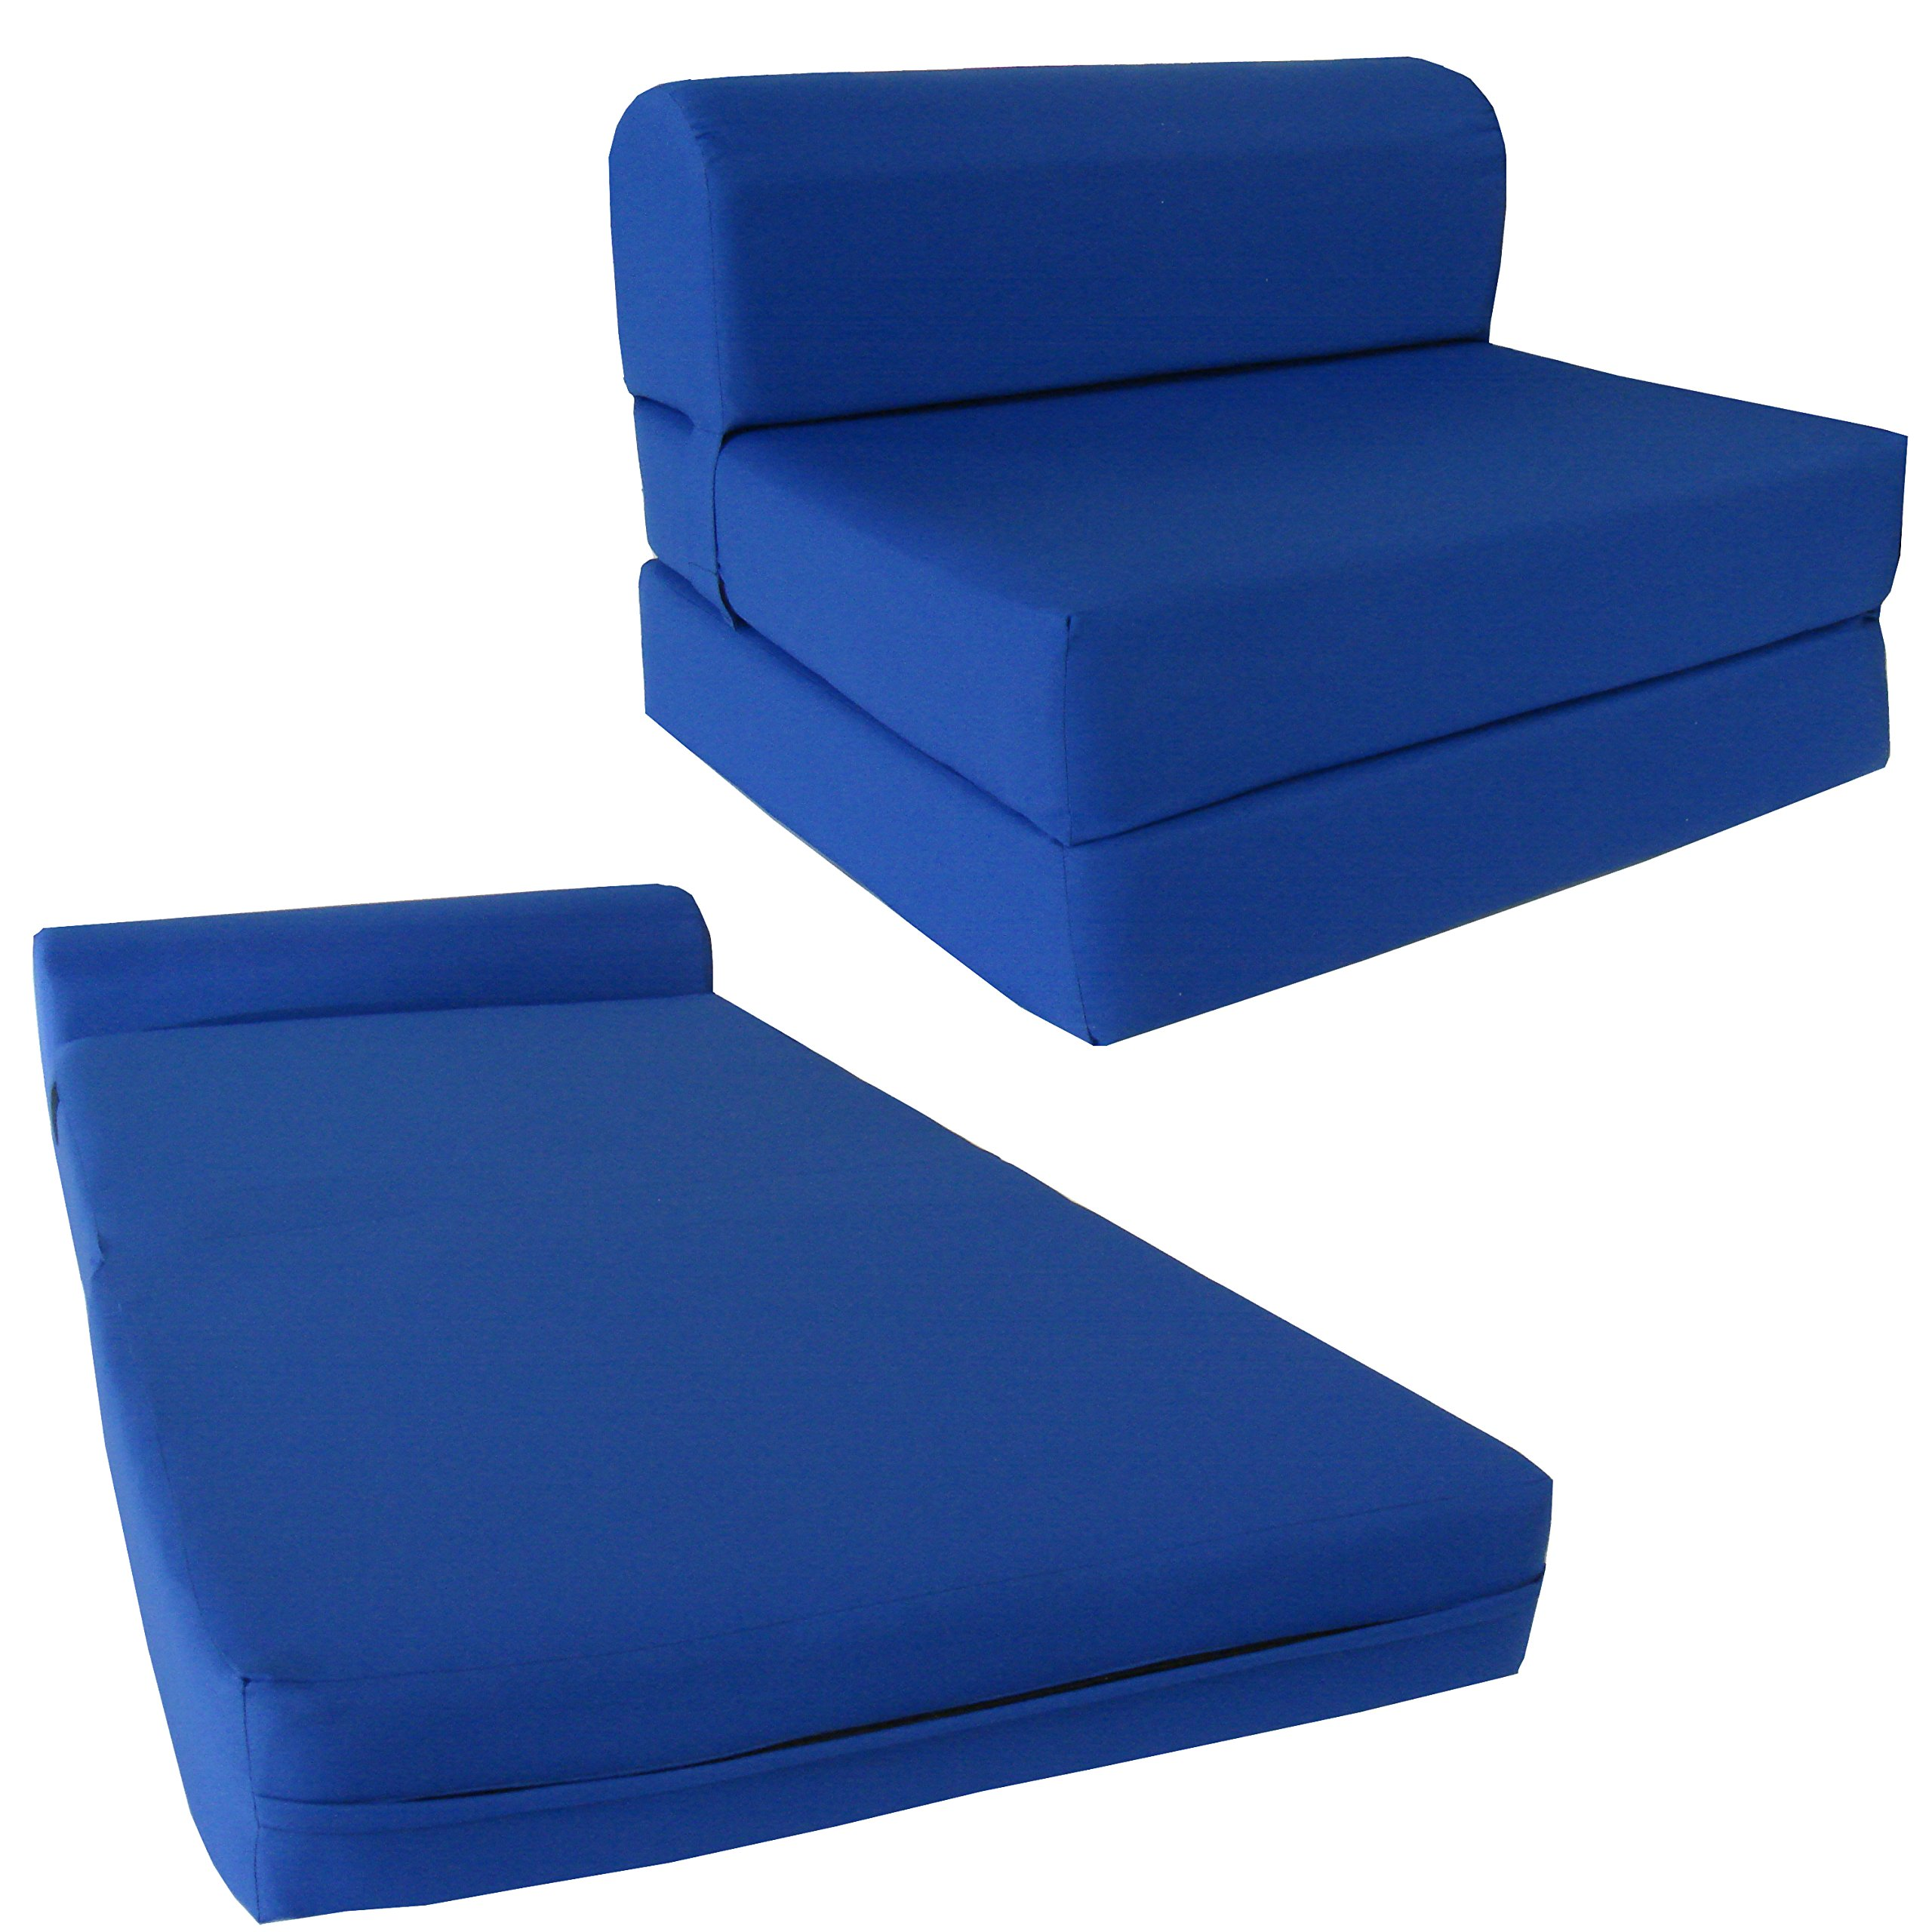 Chair Folding Foam Bed, Studio Sofa Guest Folded Foam Mattress (6'' x 24'' x 70'', Royal Blue) by D&D Futon Furniture.